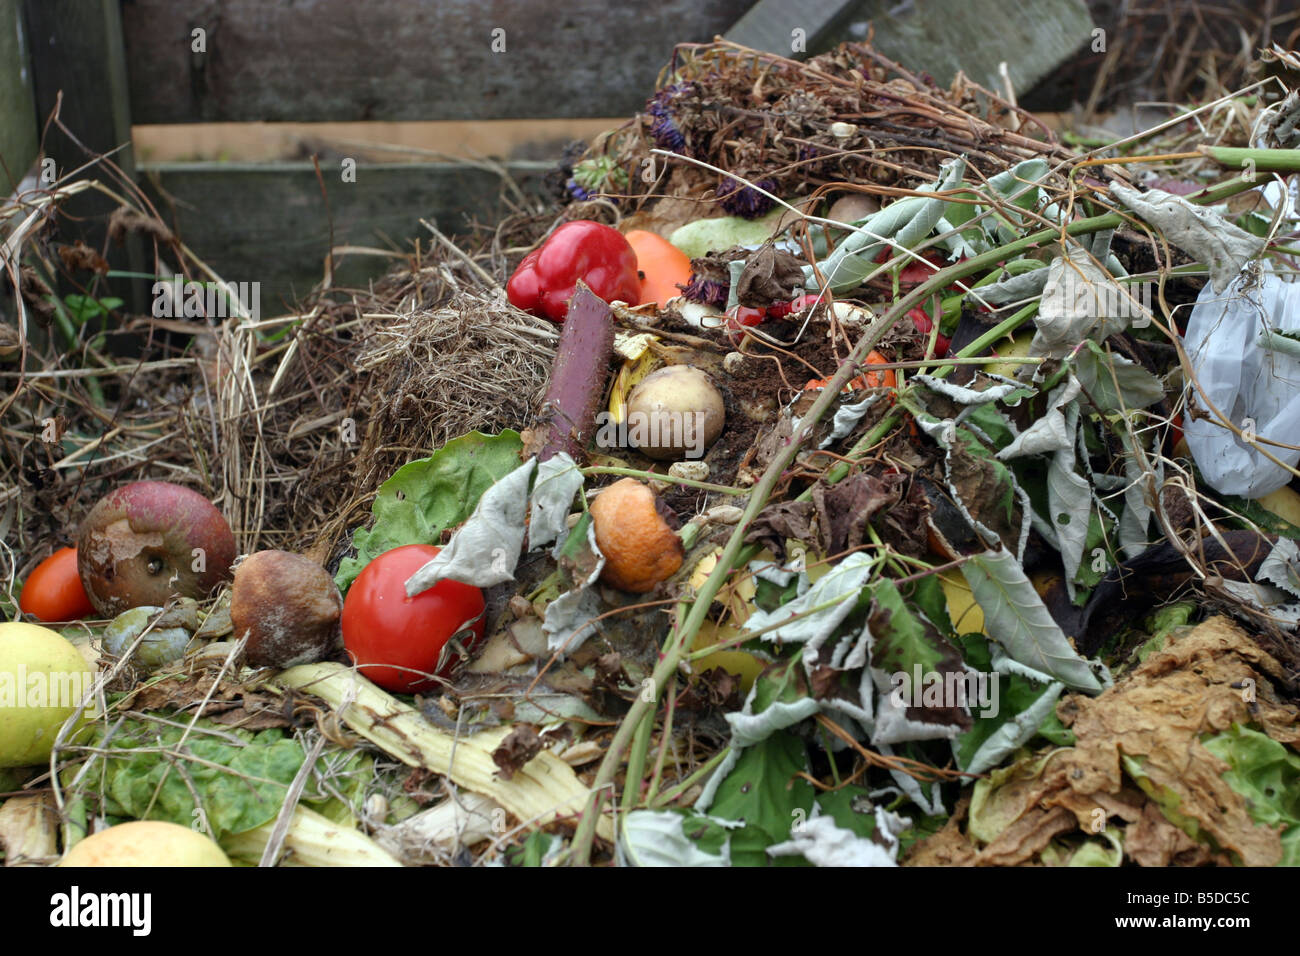 Compost heap - Stock Image